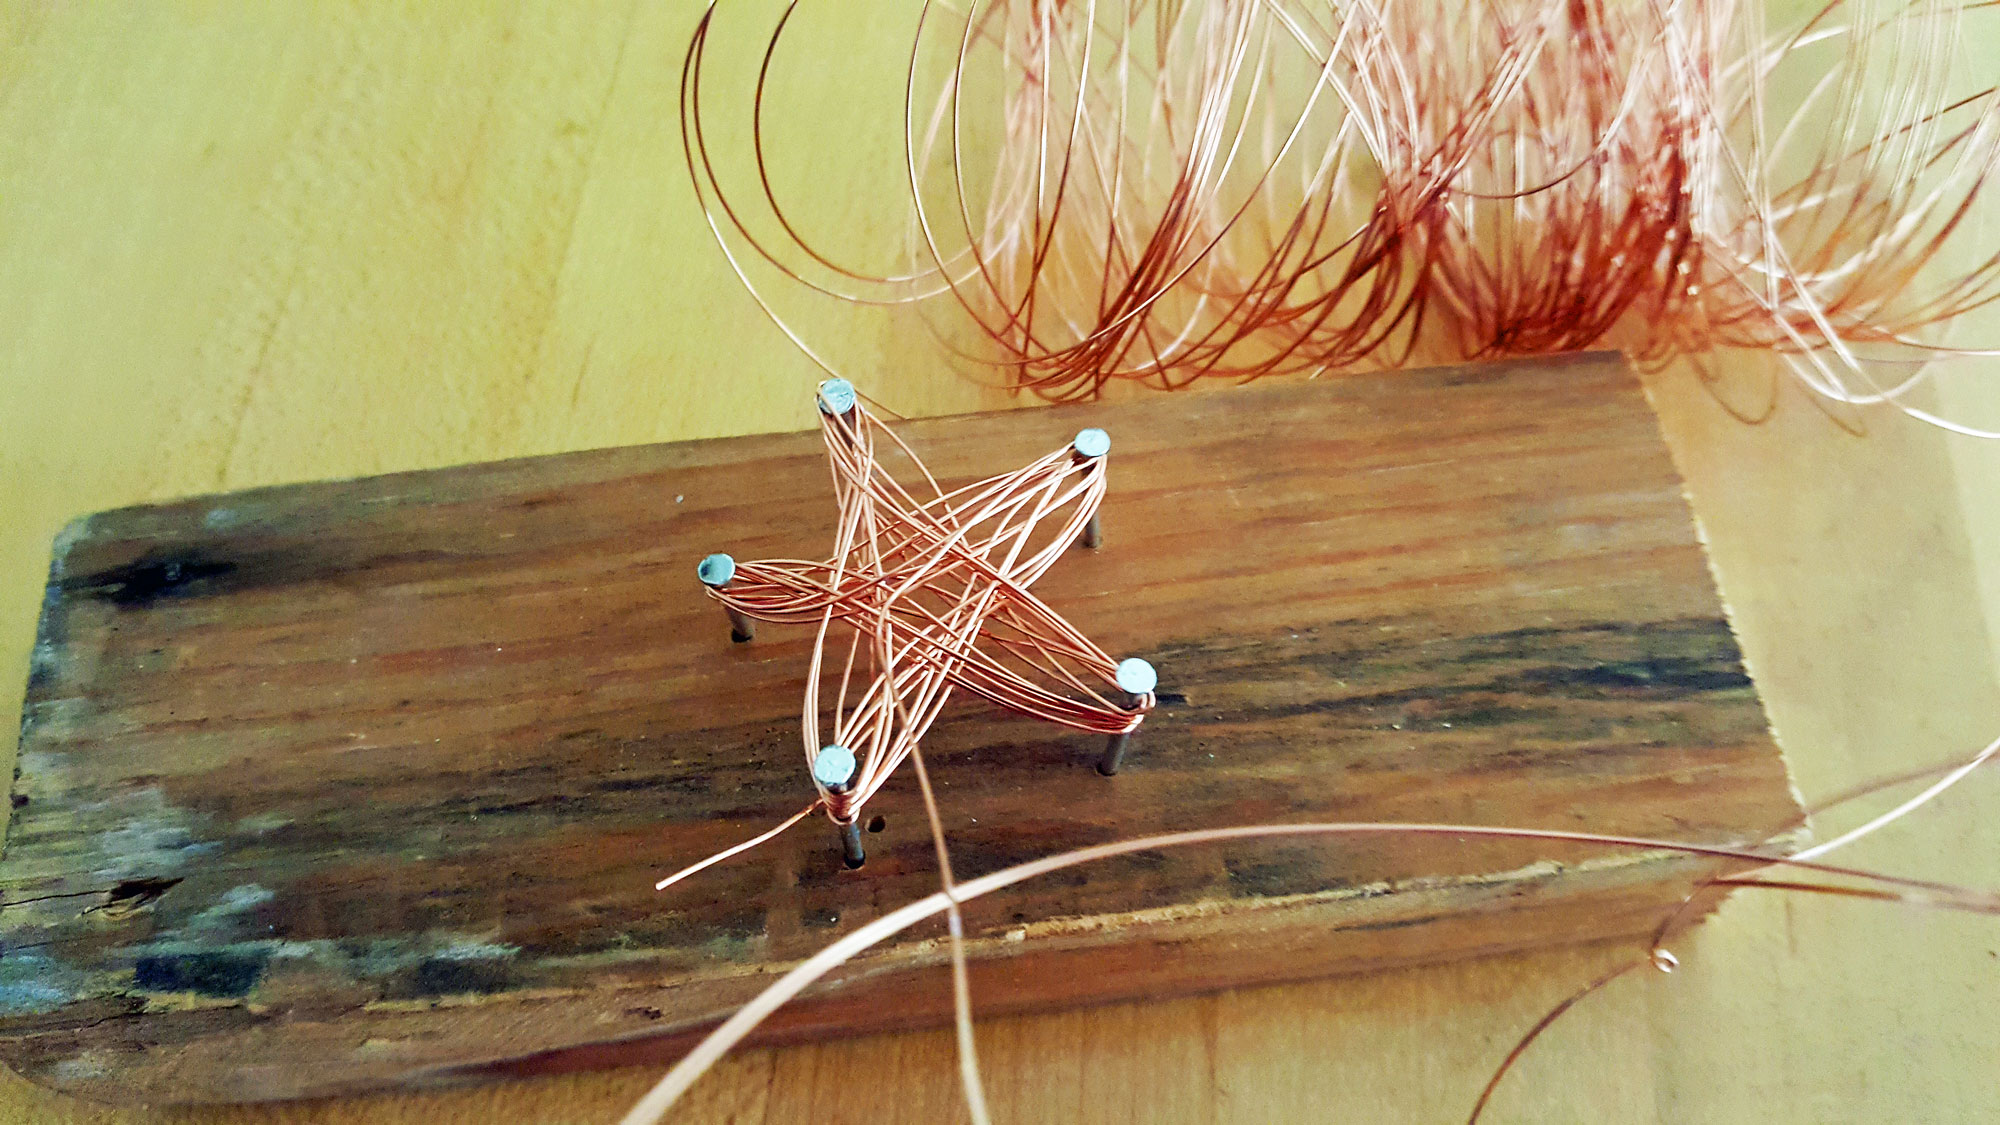 Step 3 is to tightly wind the wired around each point 6-7 times | OrnamentShop.com